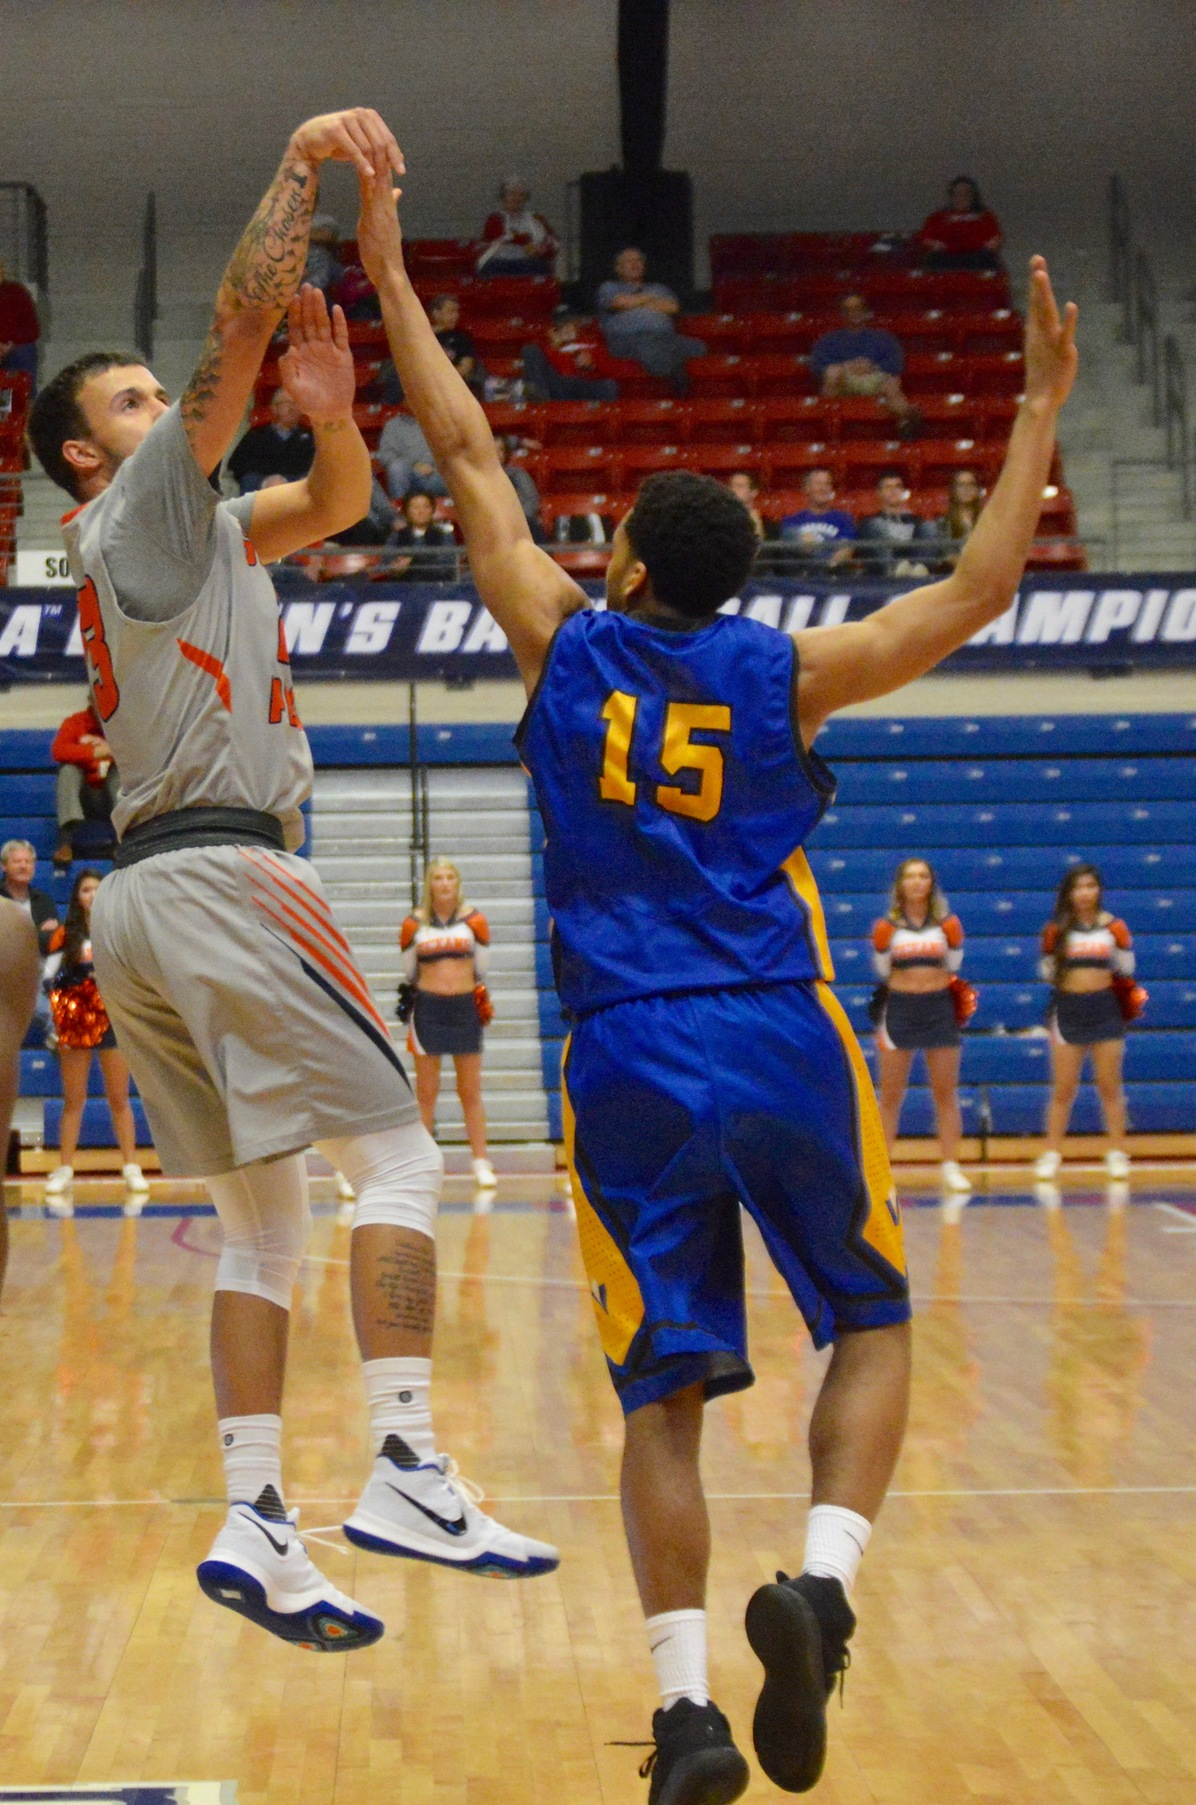 Brangers' last-second 3-pointer sends Texans to NJCAA Final Four with 69-67 win over Vincennes on Thursday